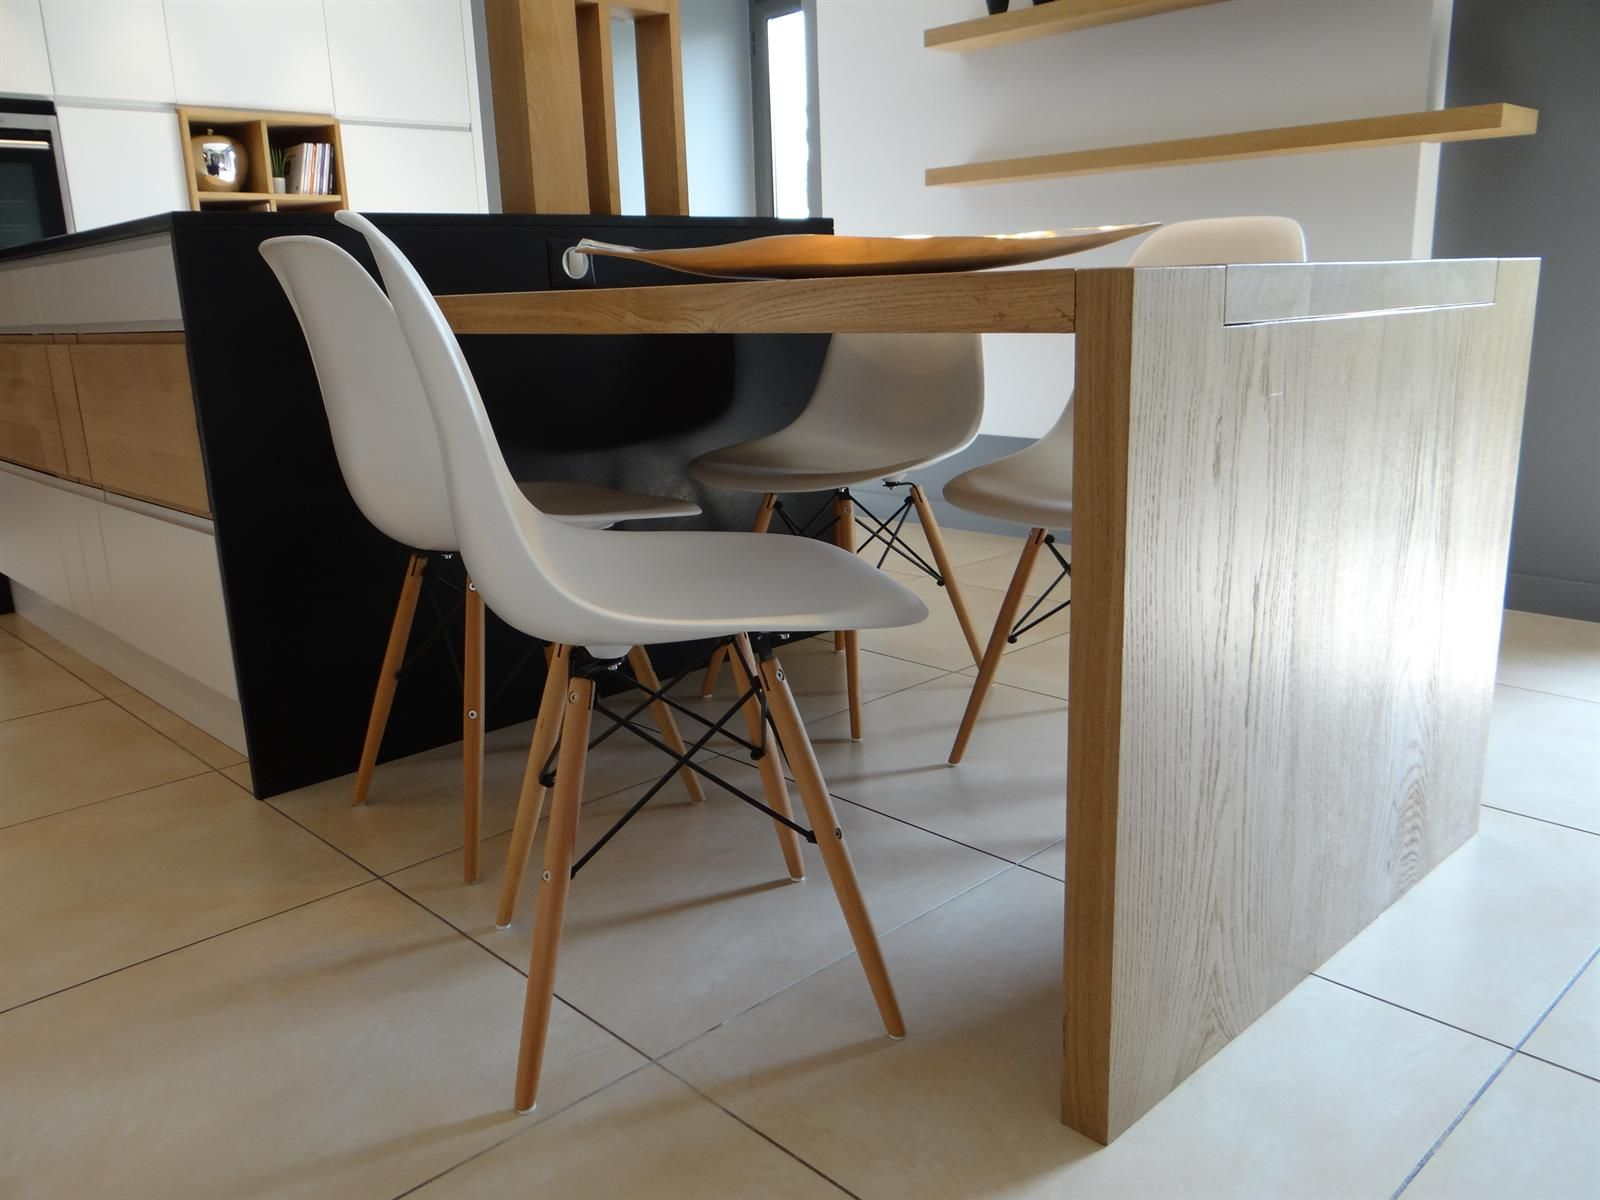 La table de cuisine en bois clair prolonge l 39 lot central for Buffet avec table escamotable